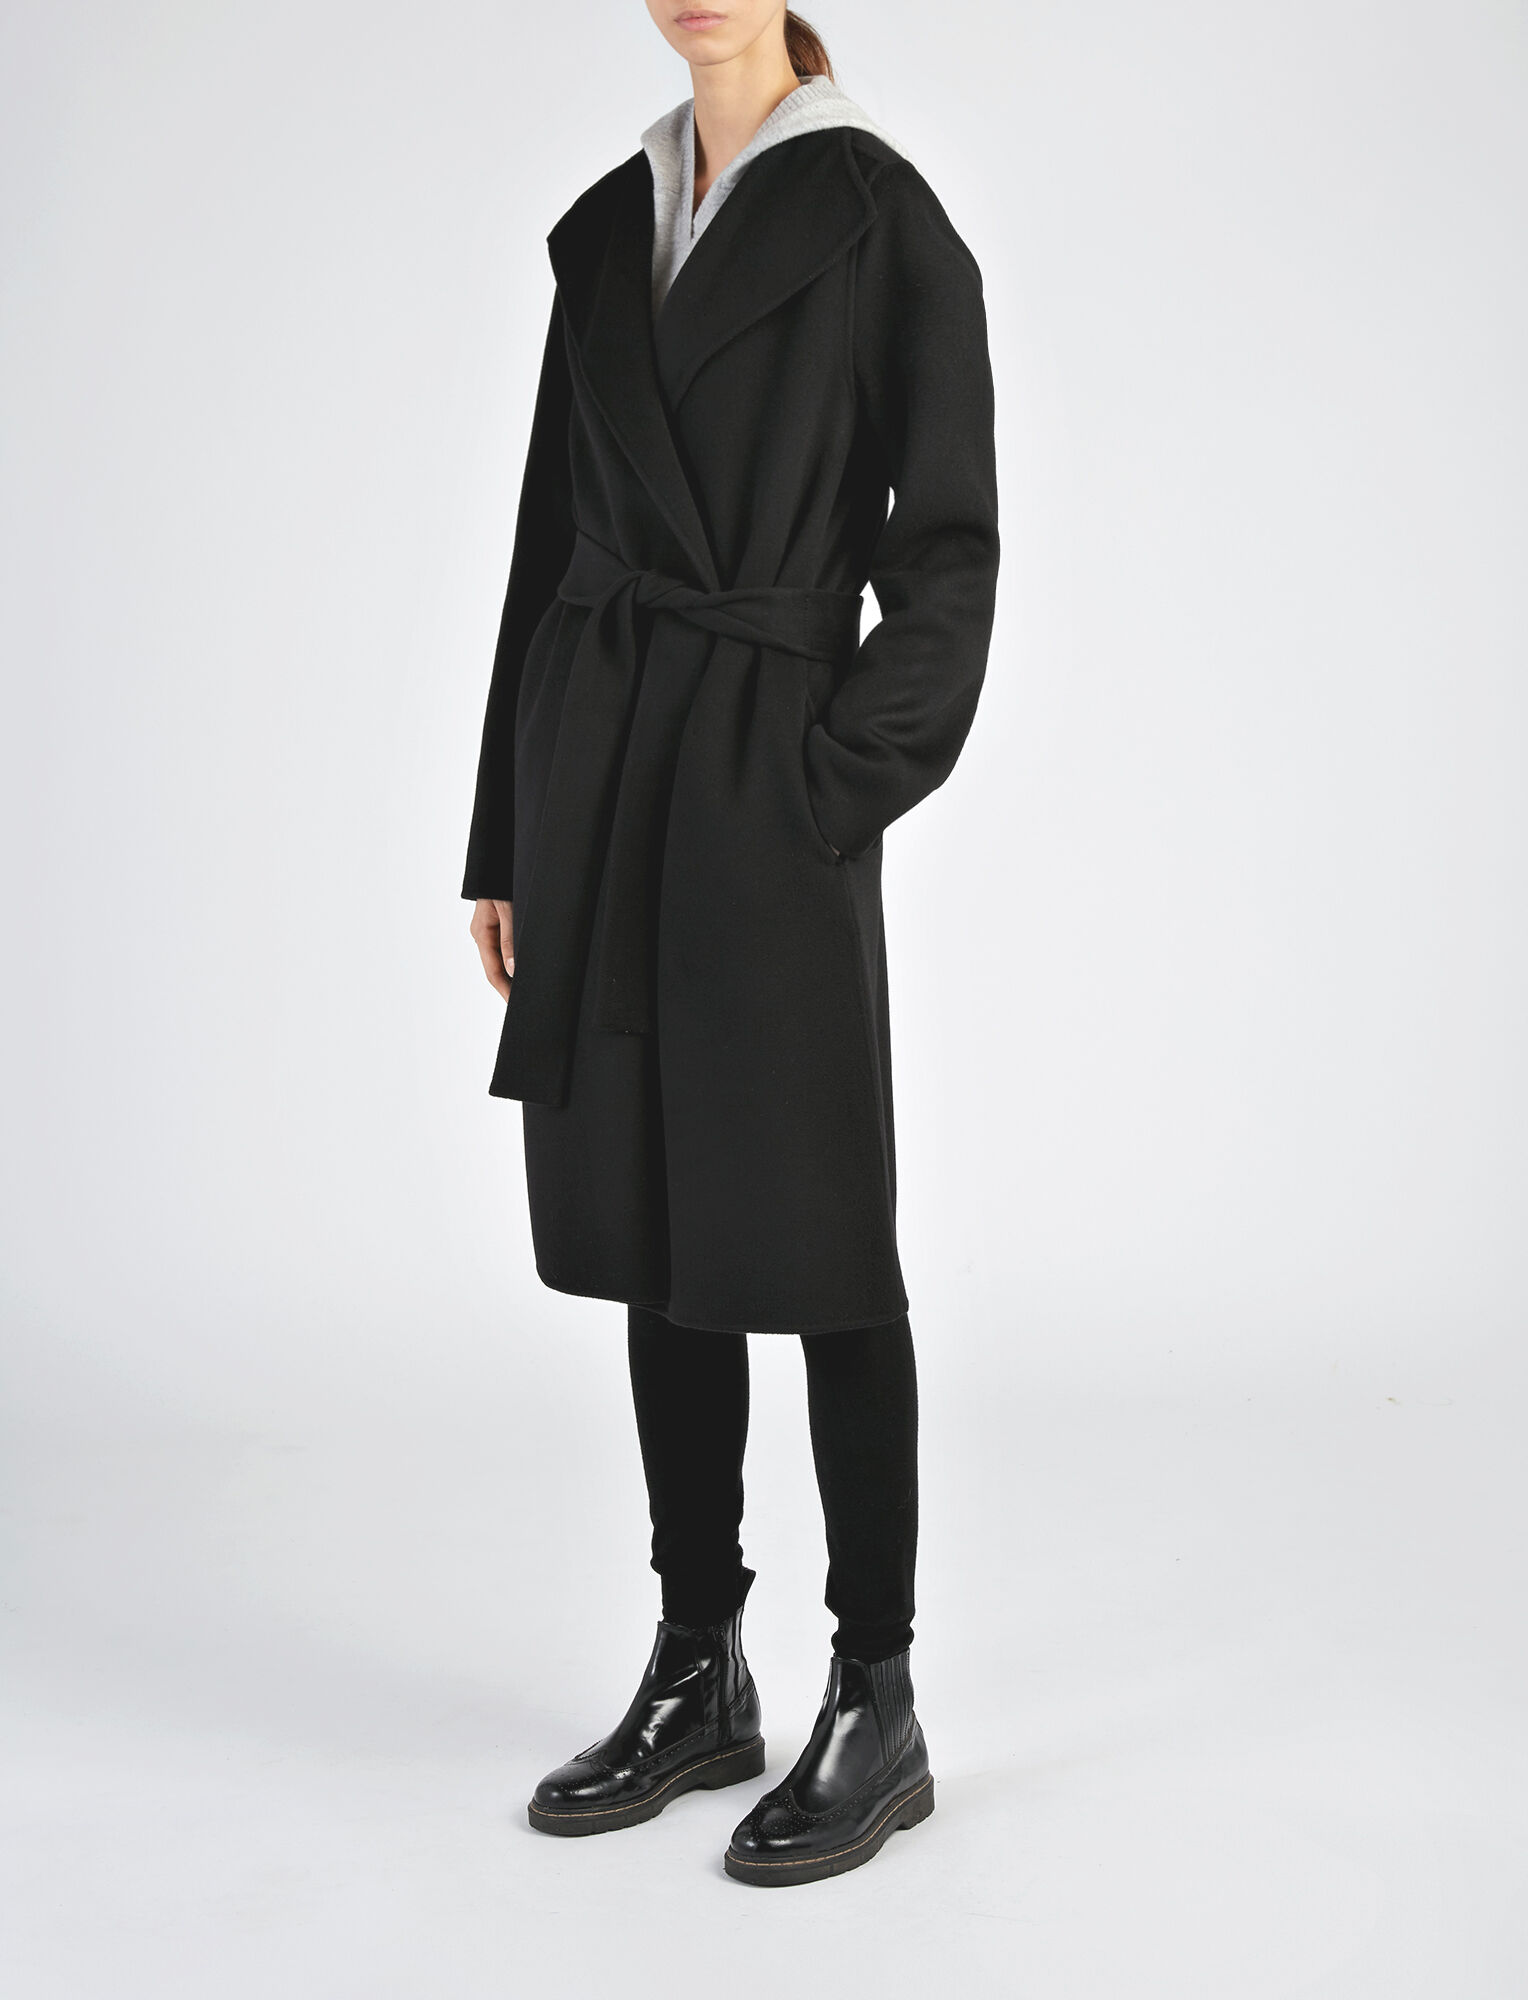 Joseph, Manteau Lima en double cachemire, in BLACK